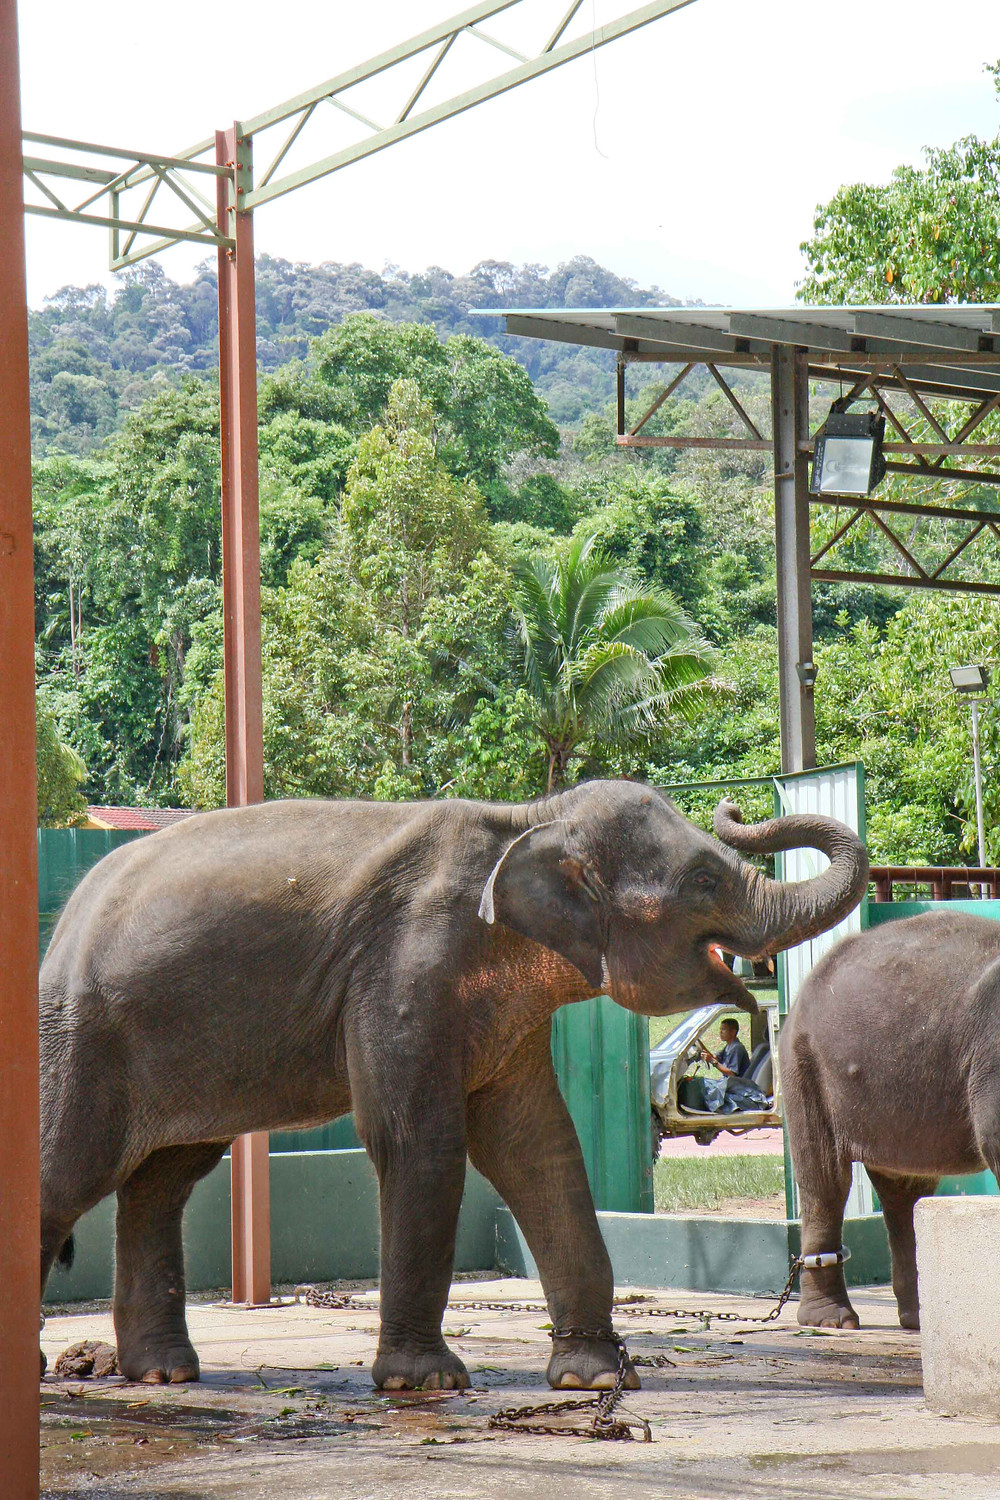 Chained Asian elephant in captivity